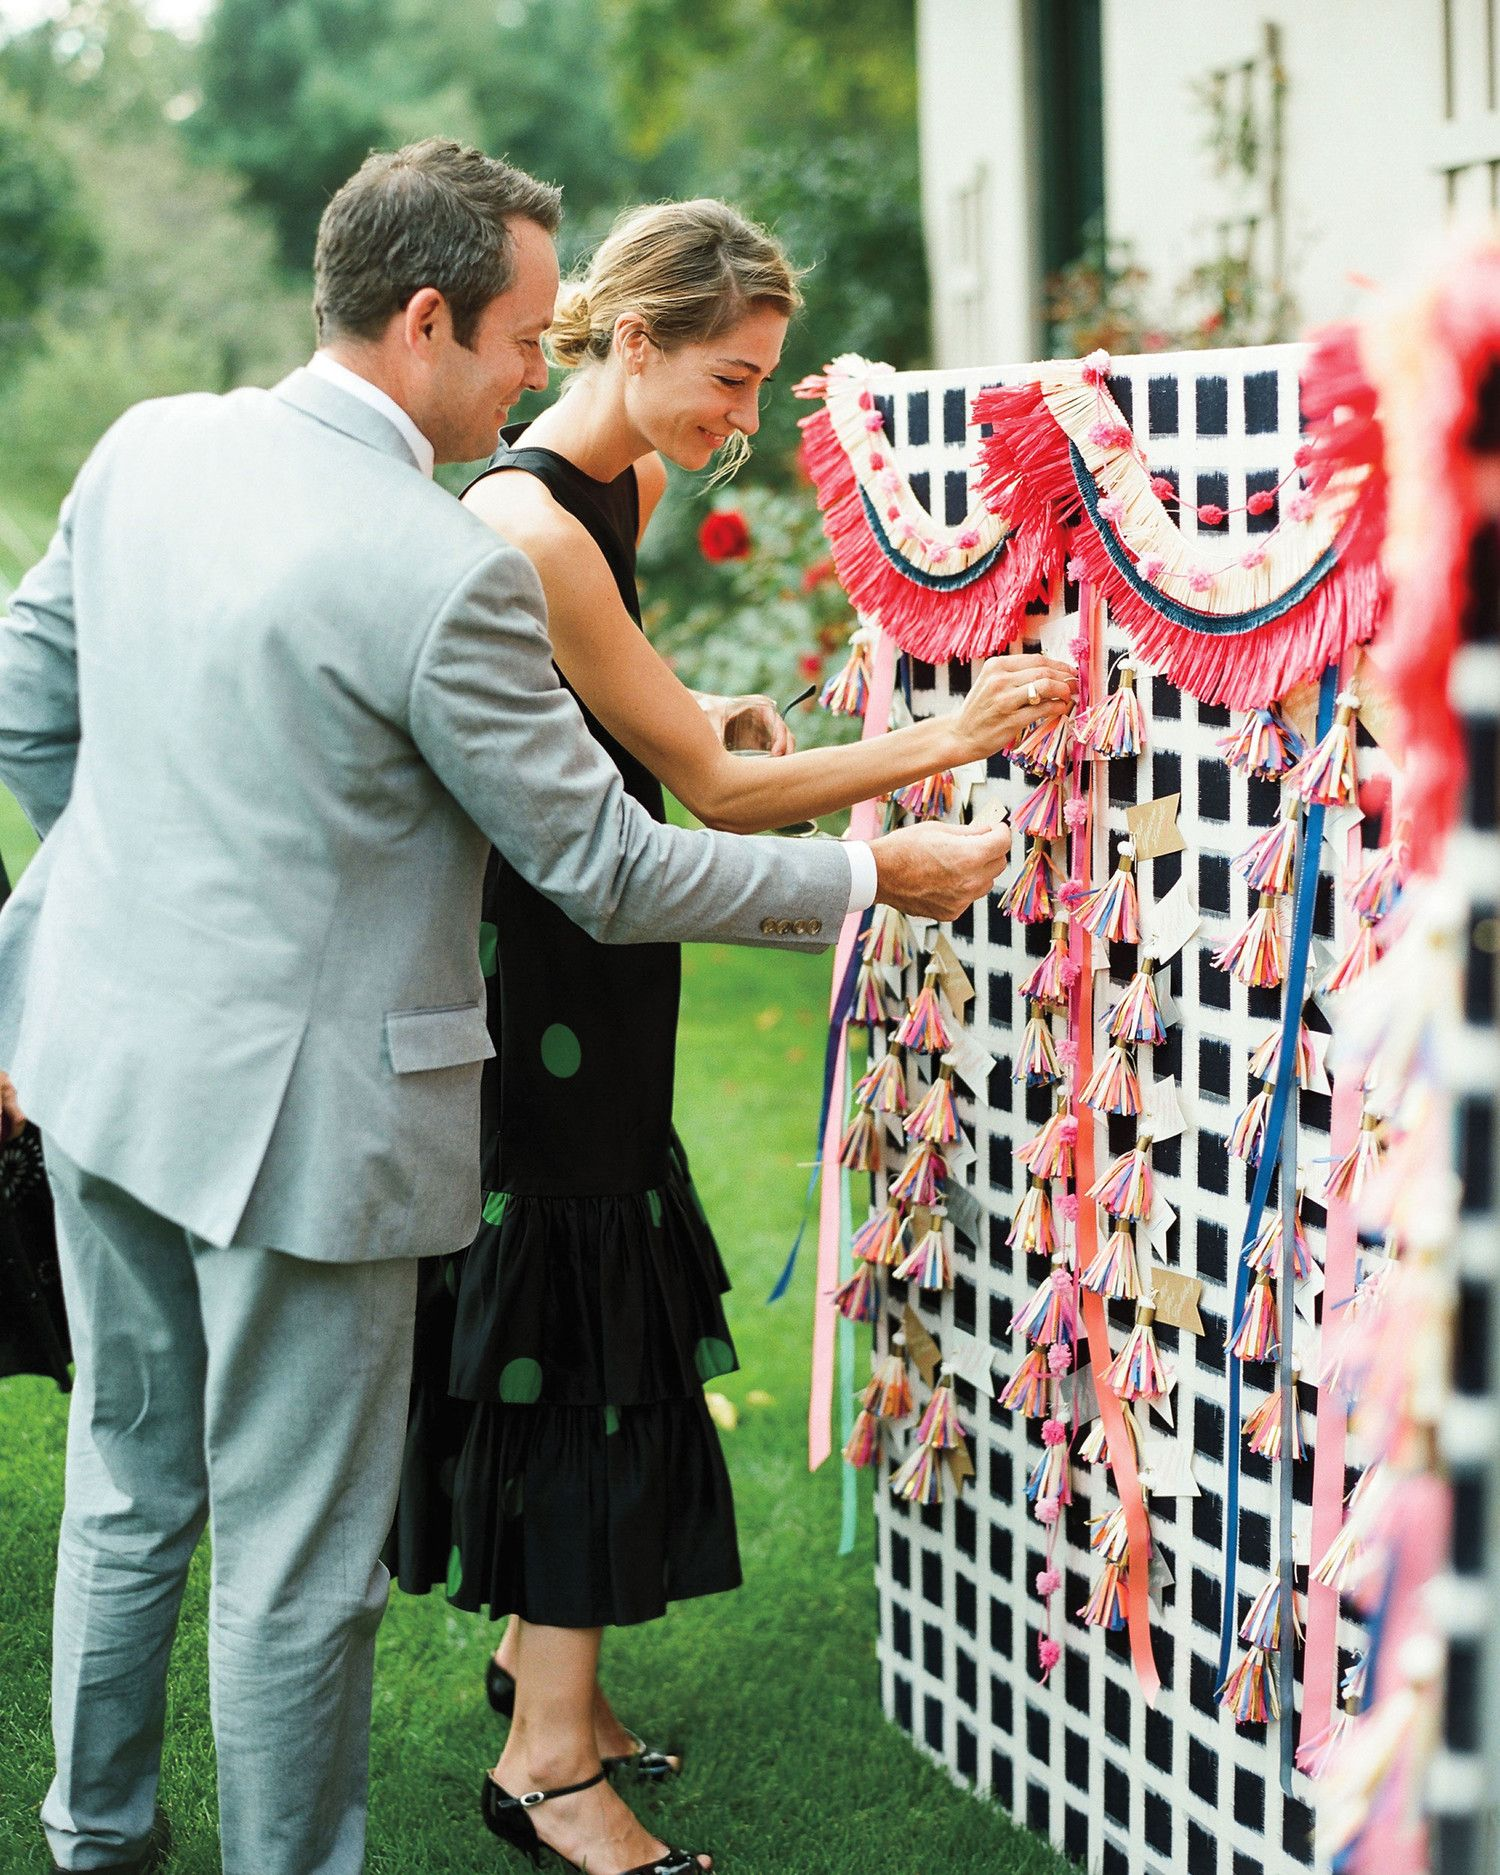 Wedding Ideas On A Tight Budget: A Globally-Inspired Eclectic Vermont Wedding